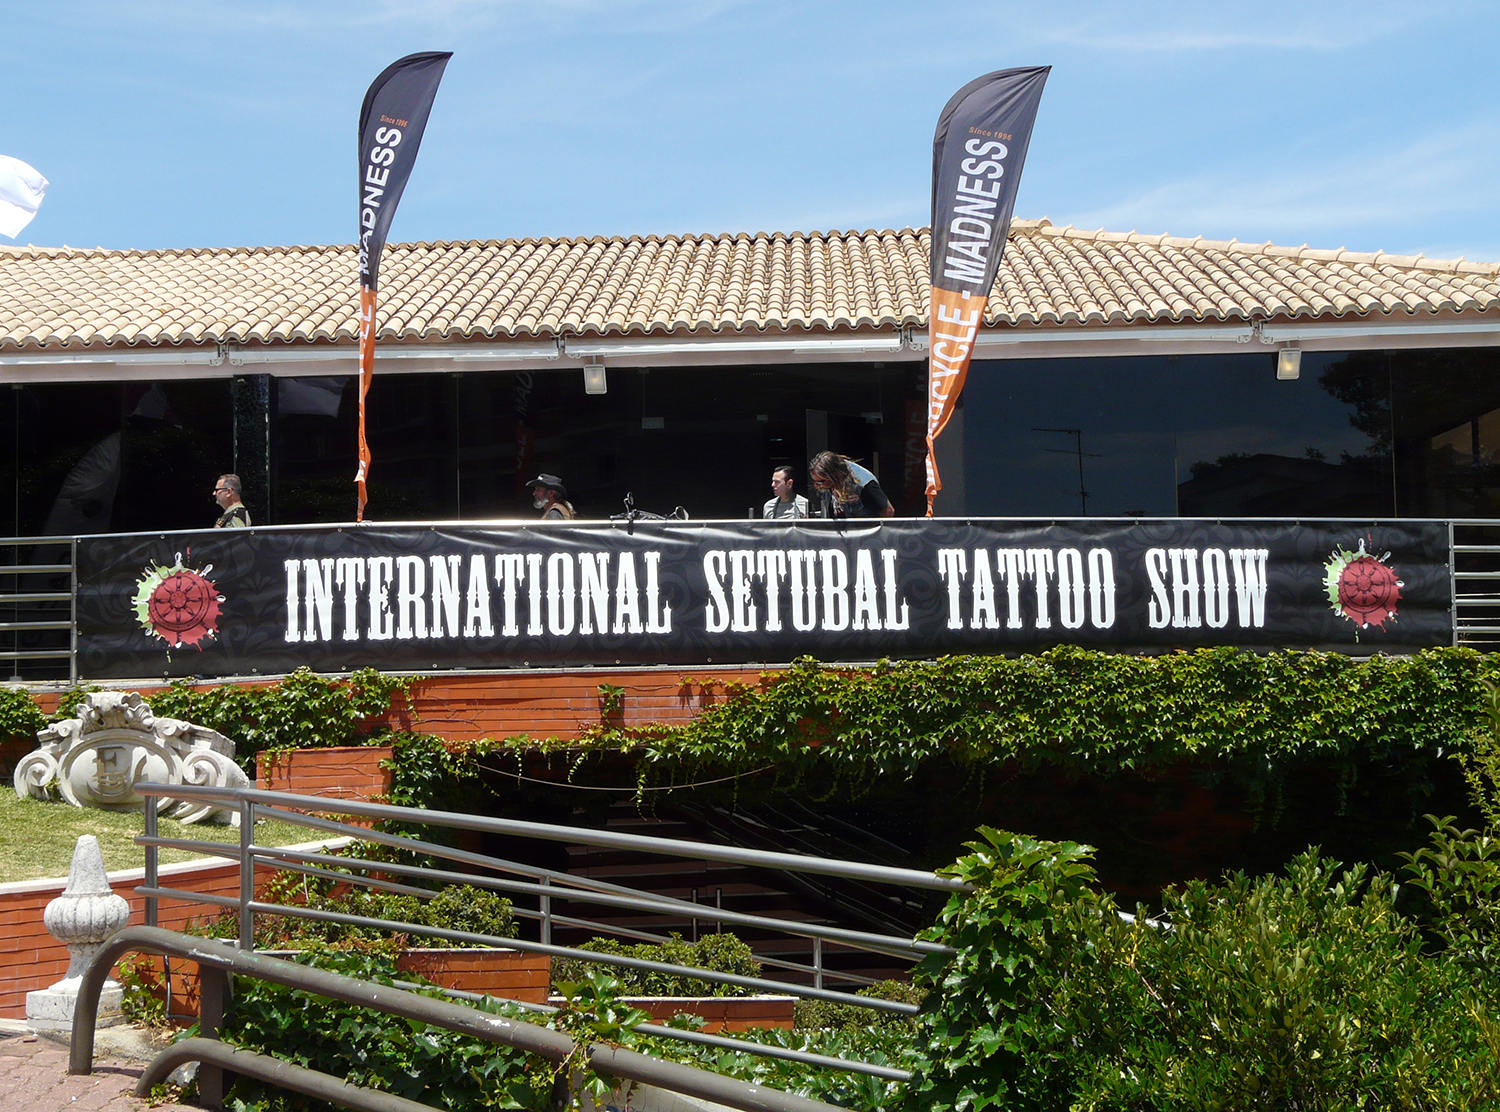 the event, outdoors, banner of the international setubal tattoo show